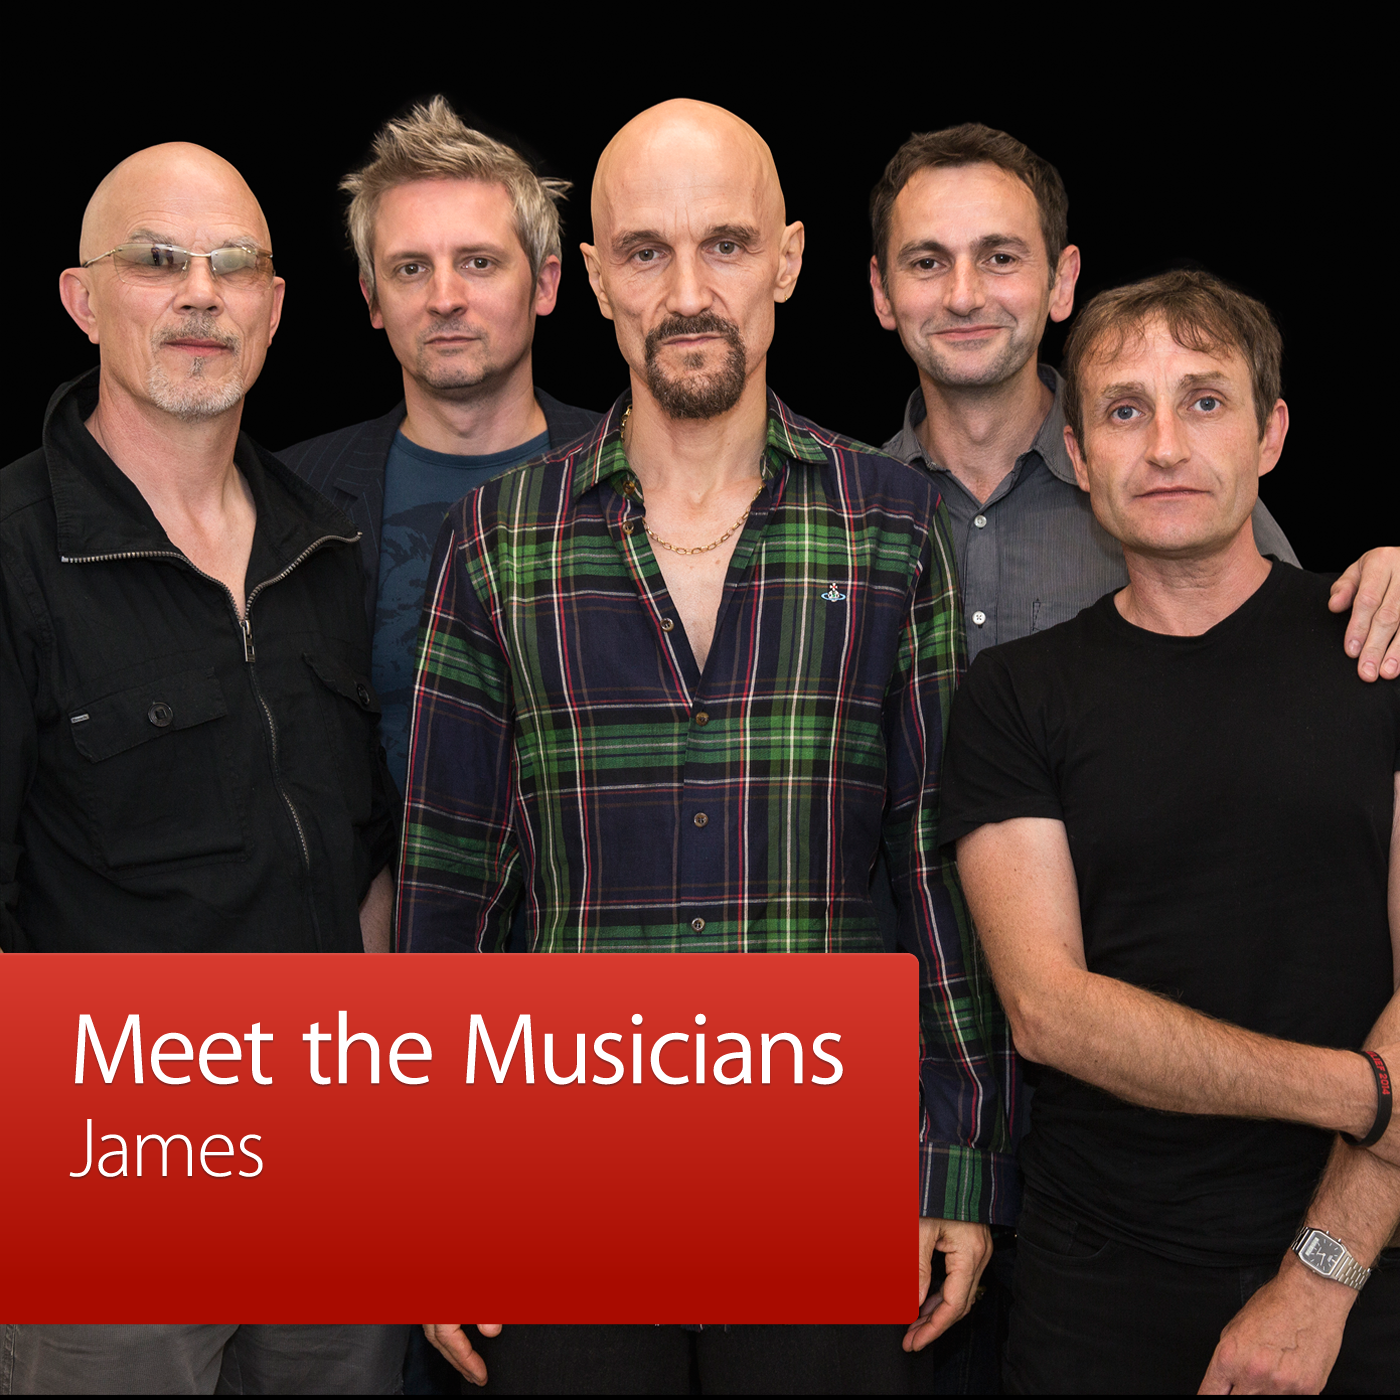 James: Meet the Musicians